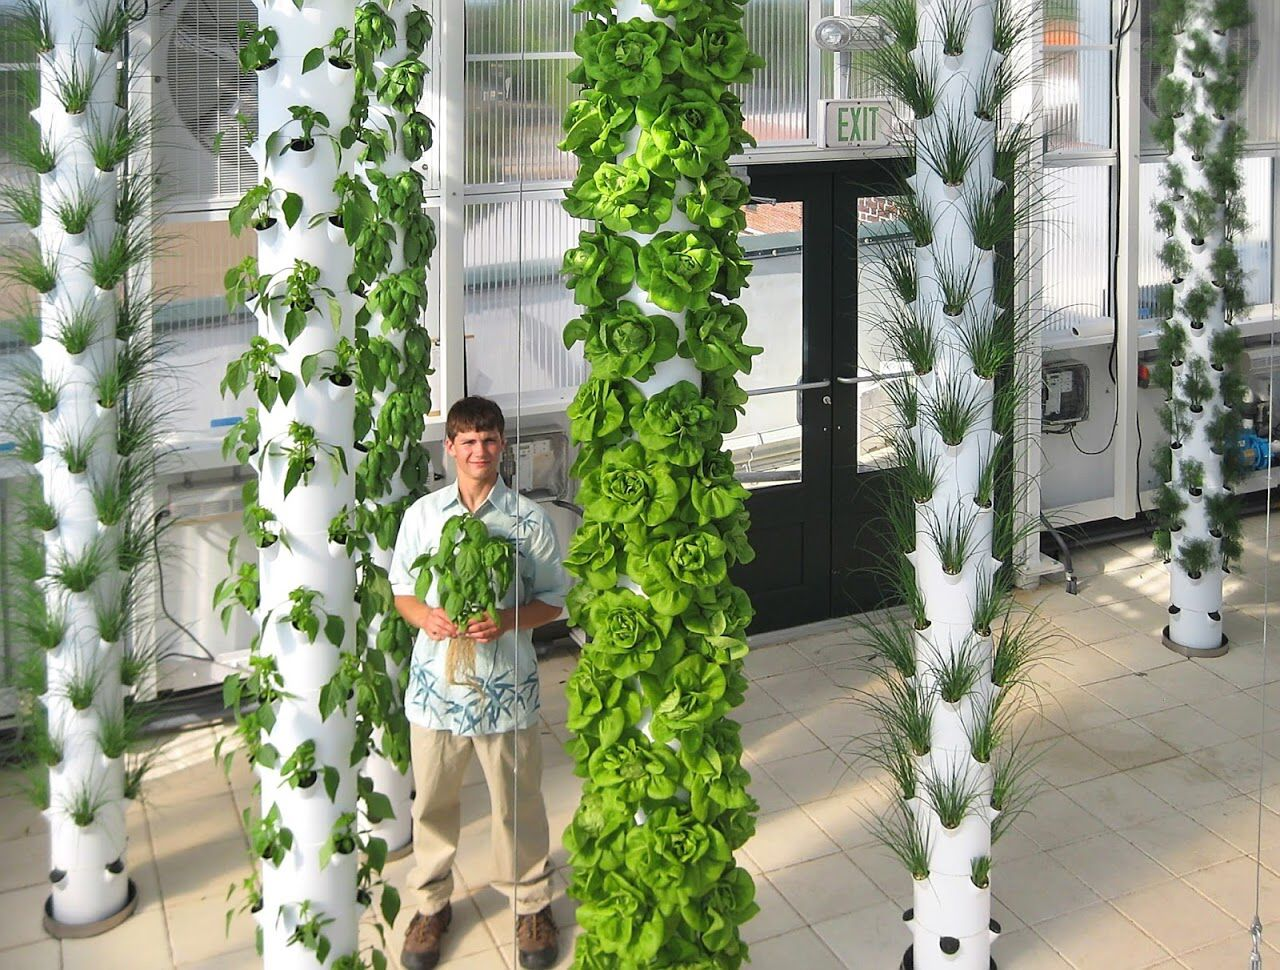 Elegant Aquaponics Meets Tower Garden @ The Garden Building Rooftop Greenhouse In  Orlando, FL Www.markgs.towergarden.com